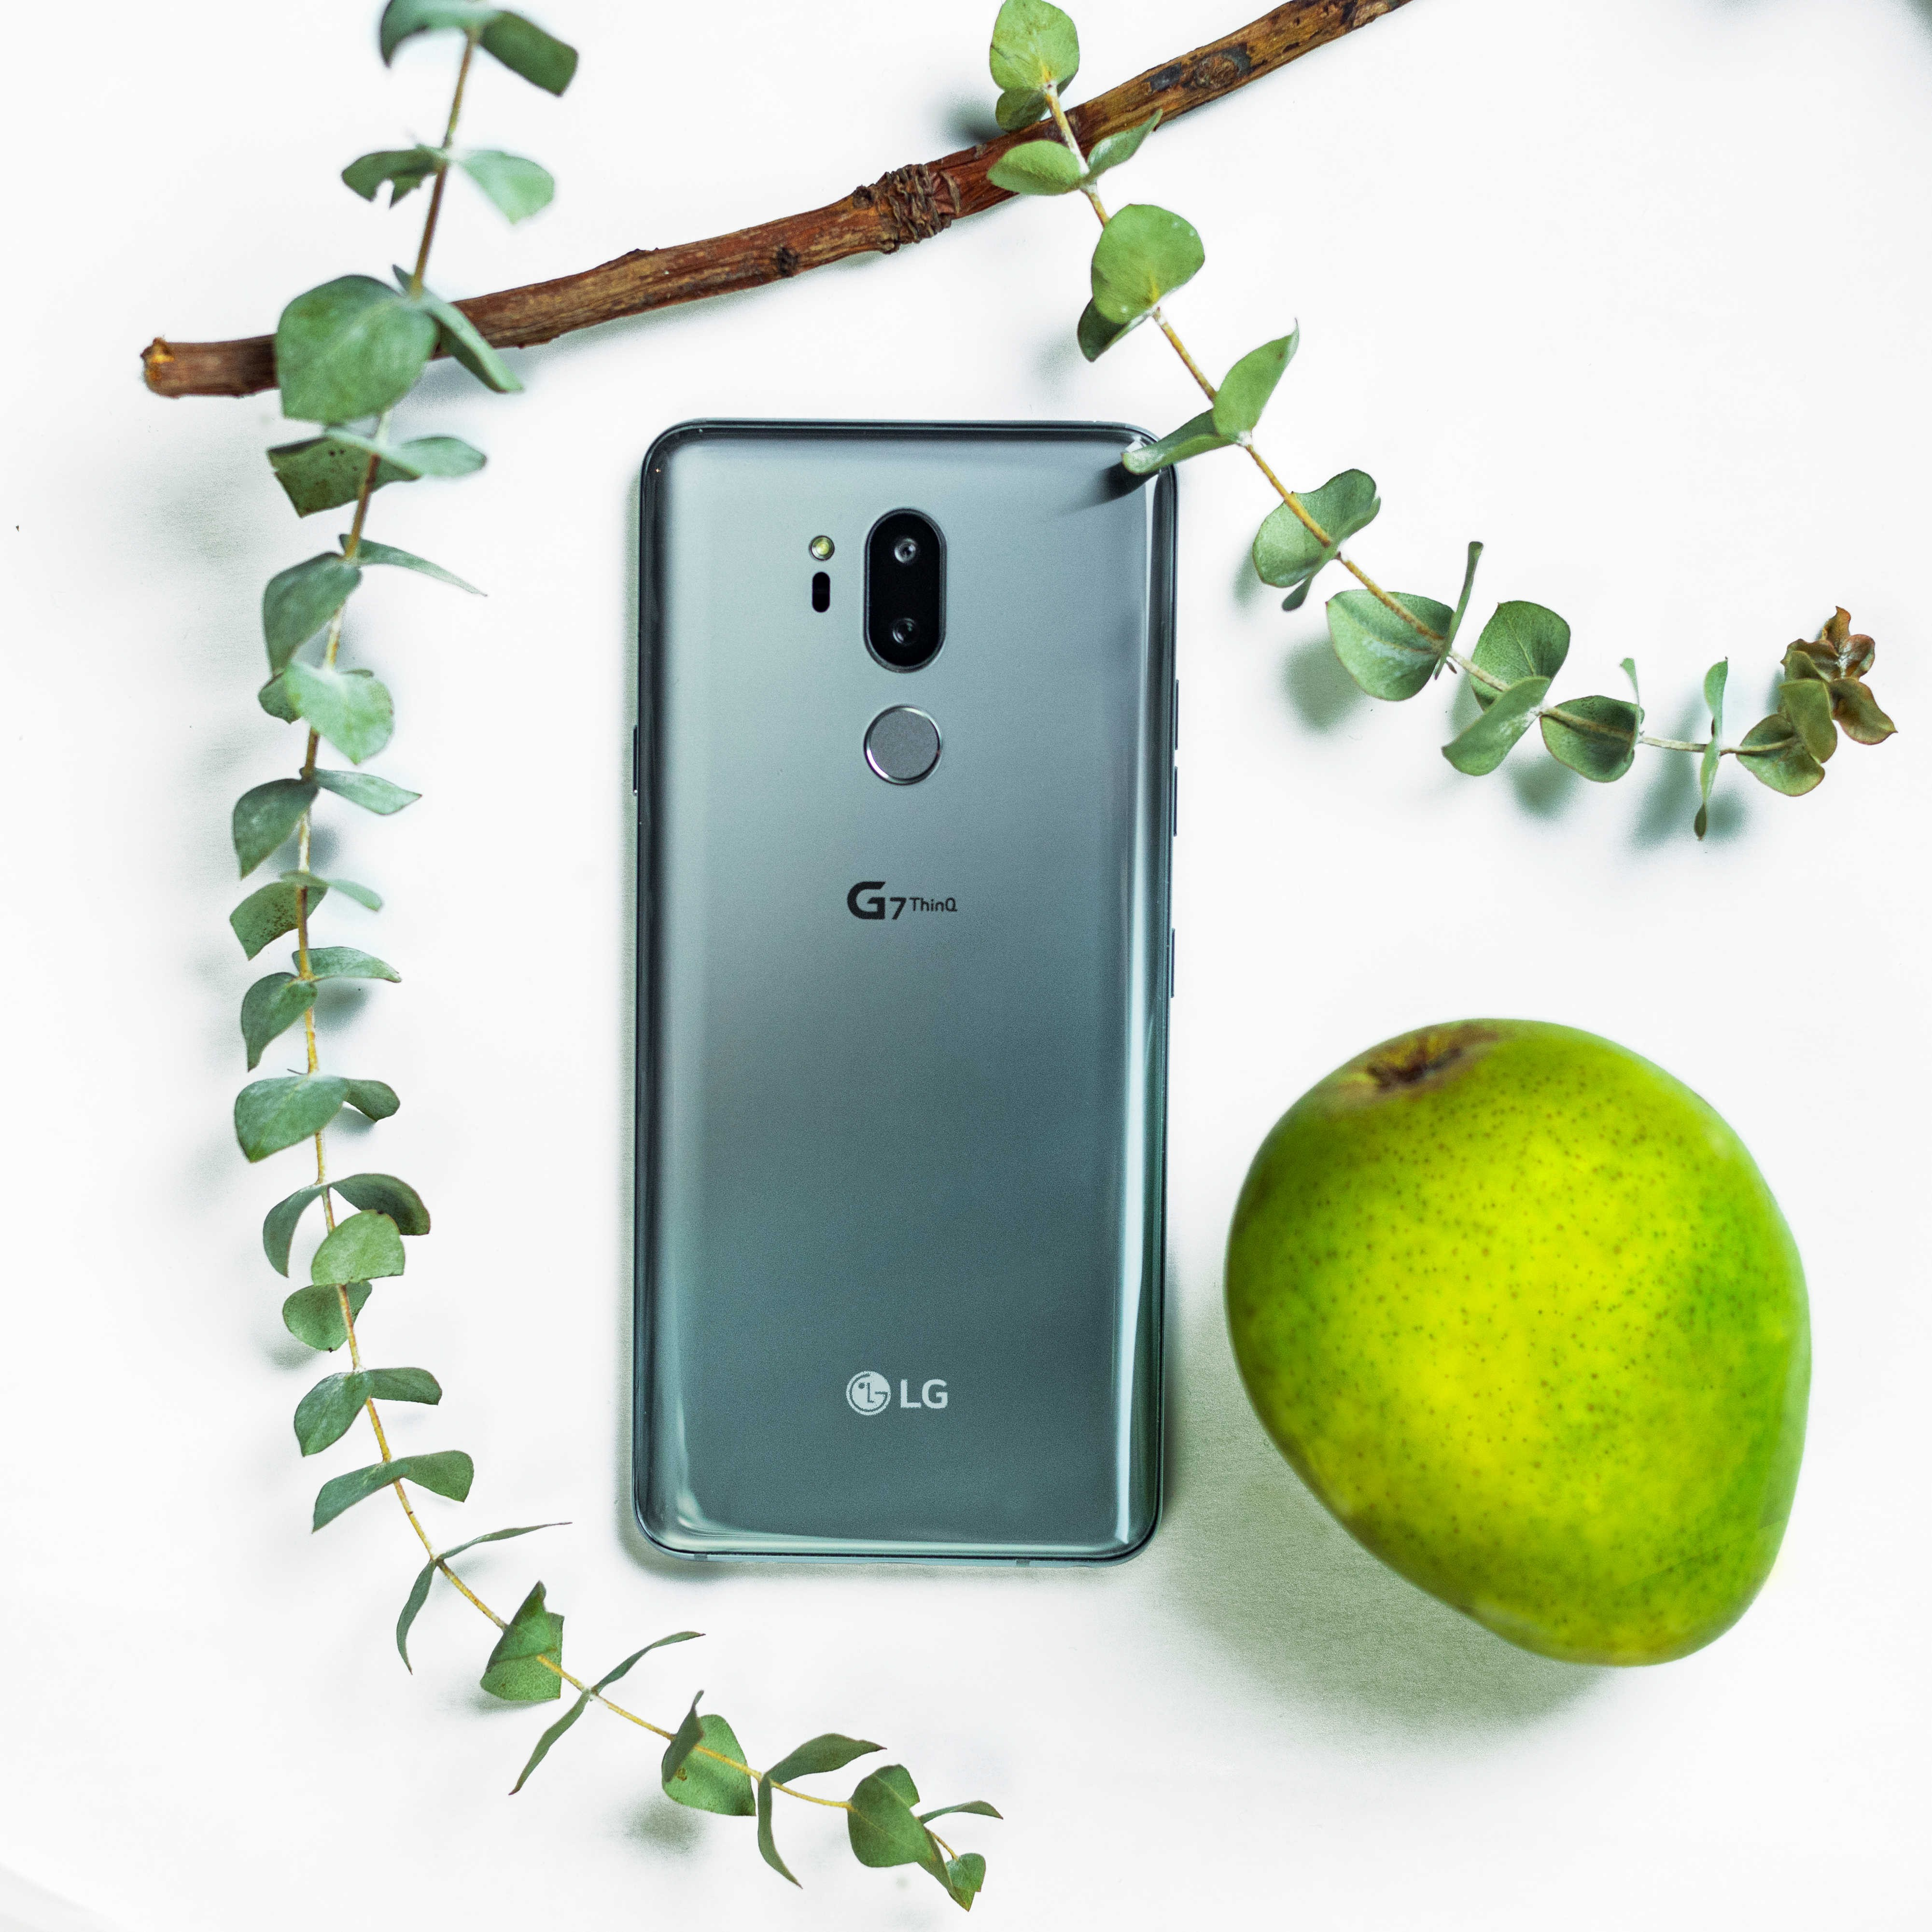 The LG G7 ThinQ in New Platinum Gray face down next to a green pear